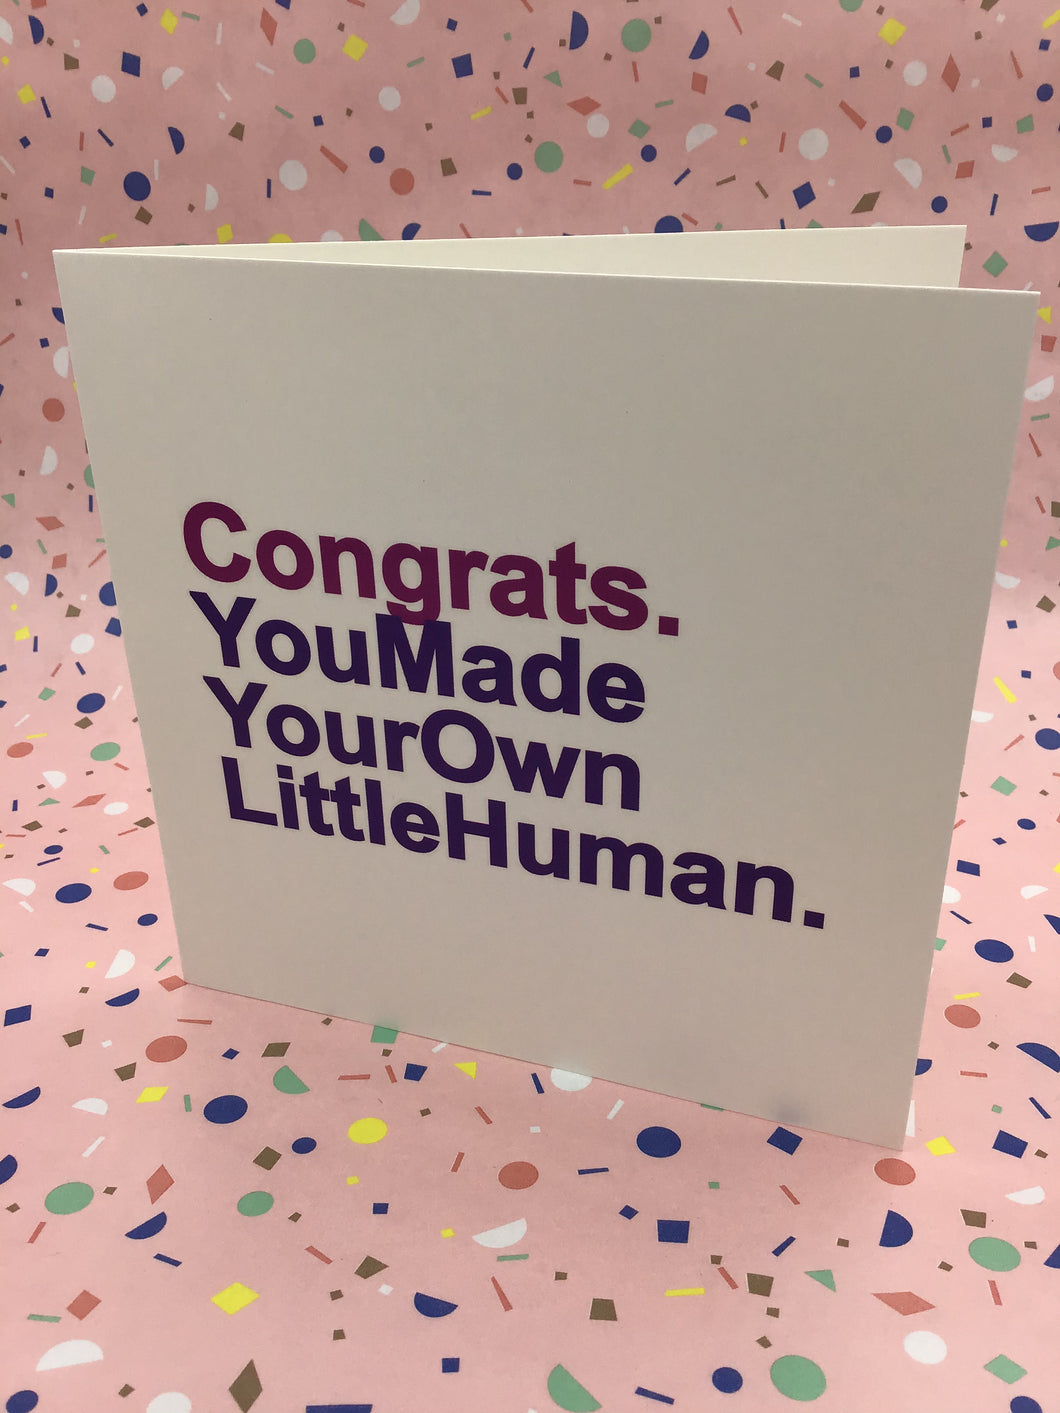 You made your own little human!